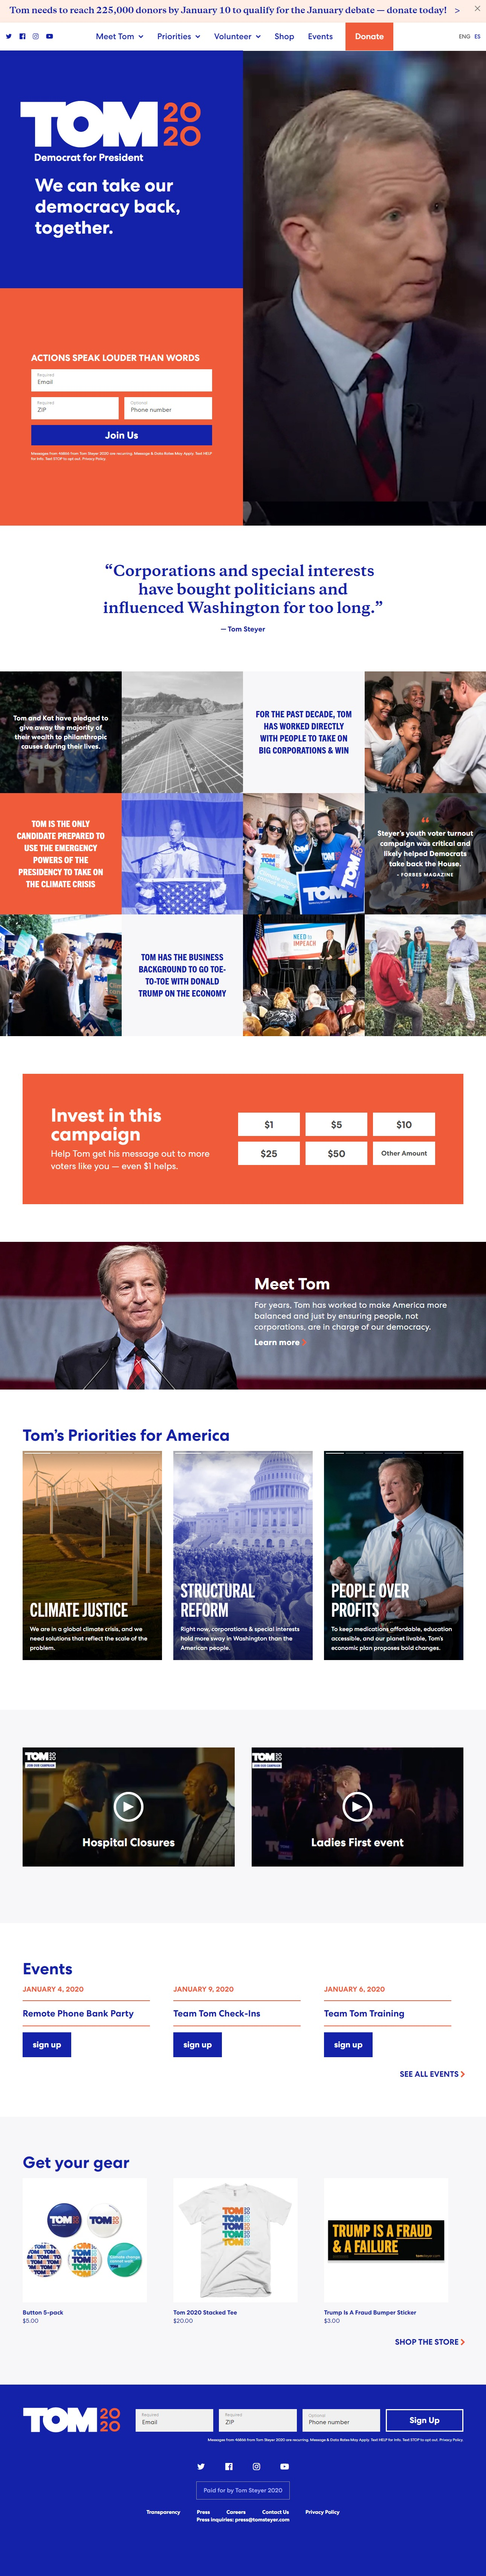 Homepage Snapshot for January 1, 2020: Businessperson Tom Steyer